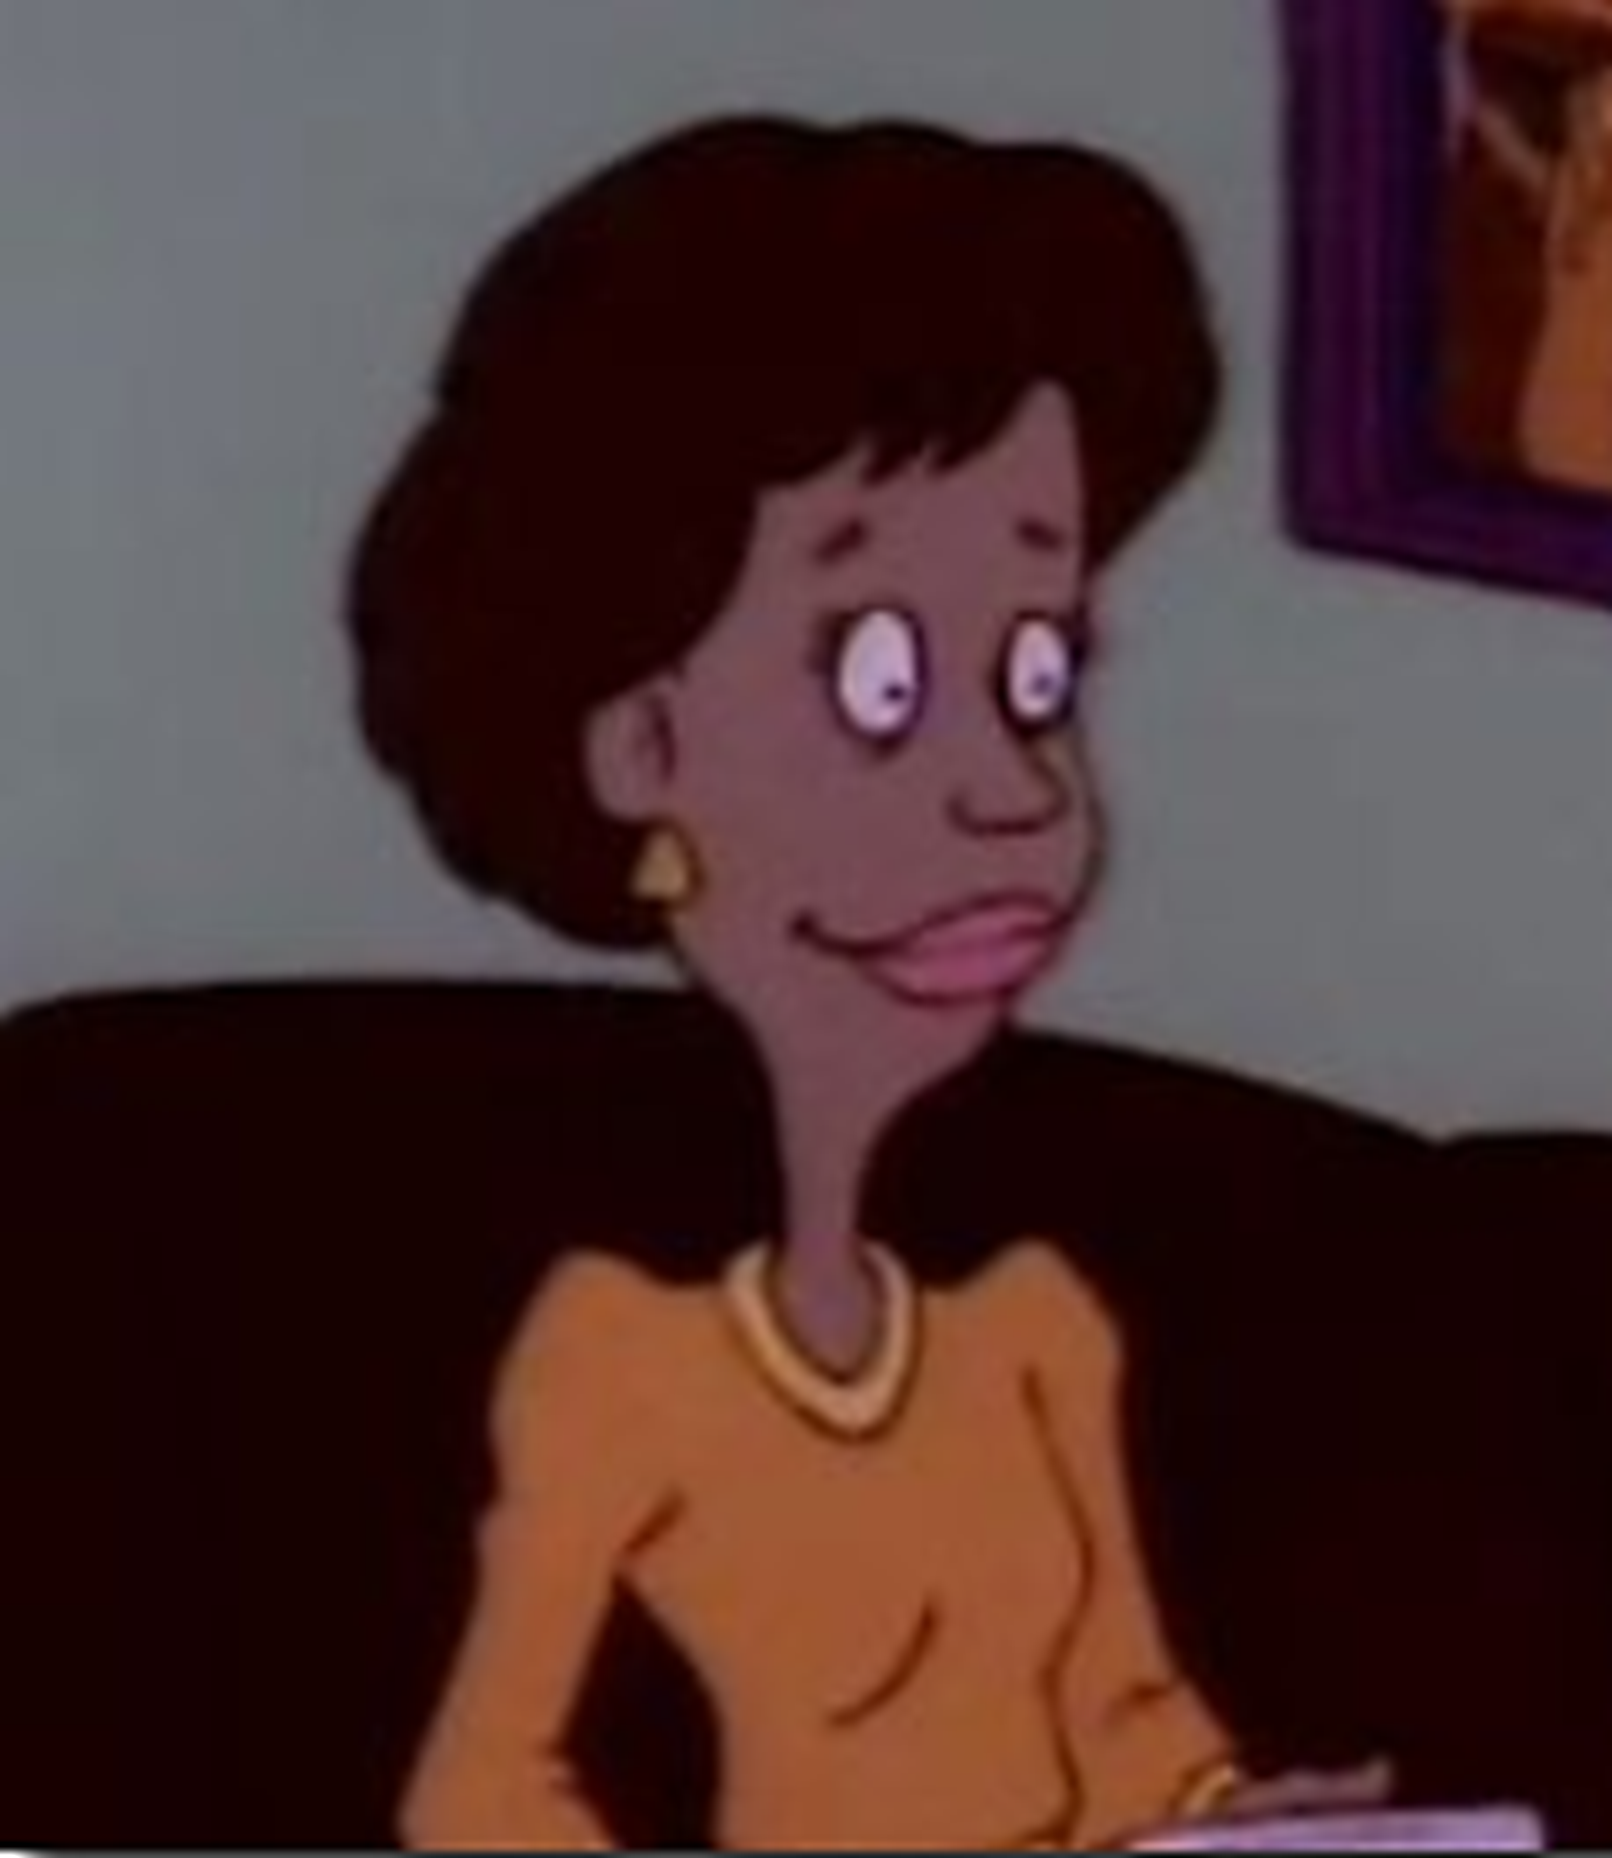 Hector's Mom